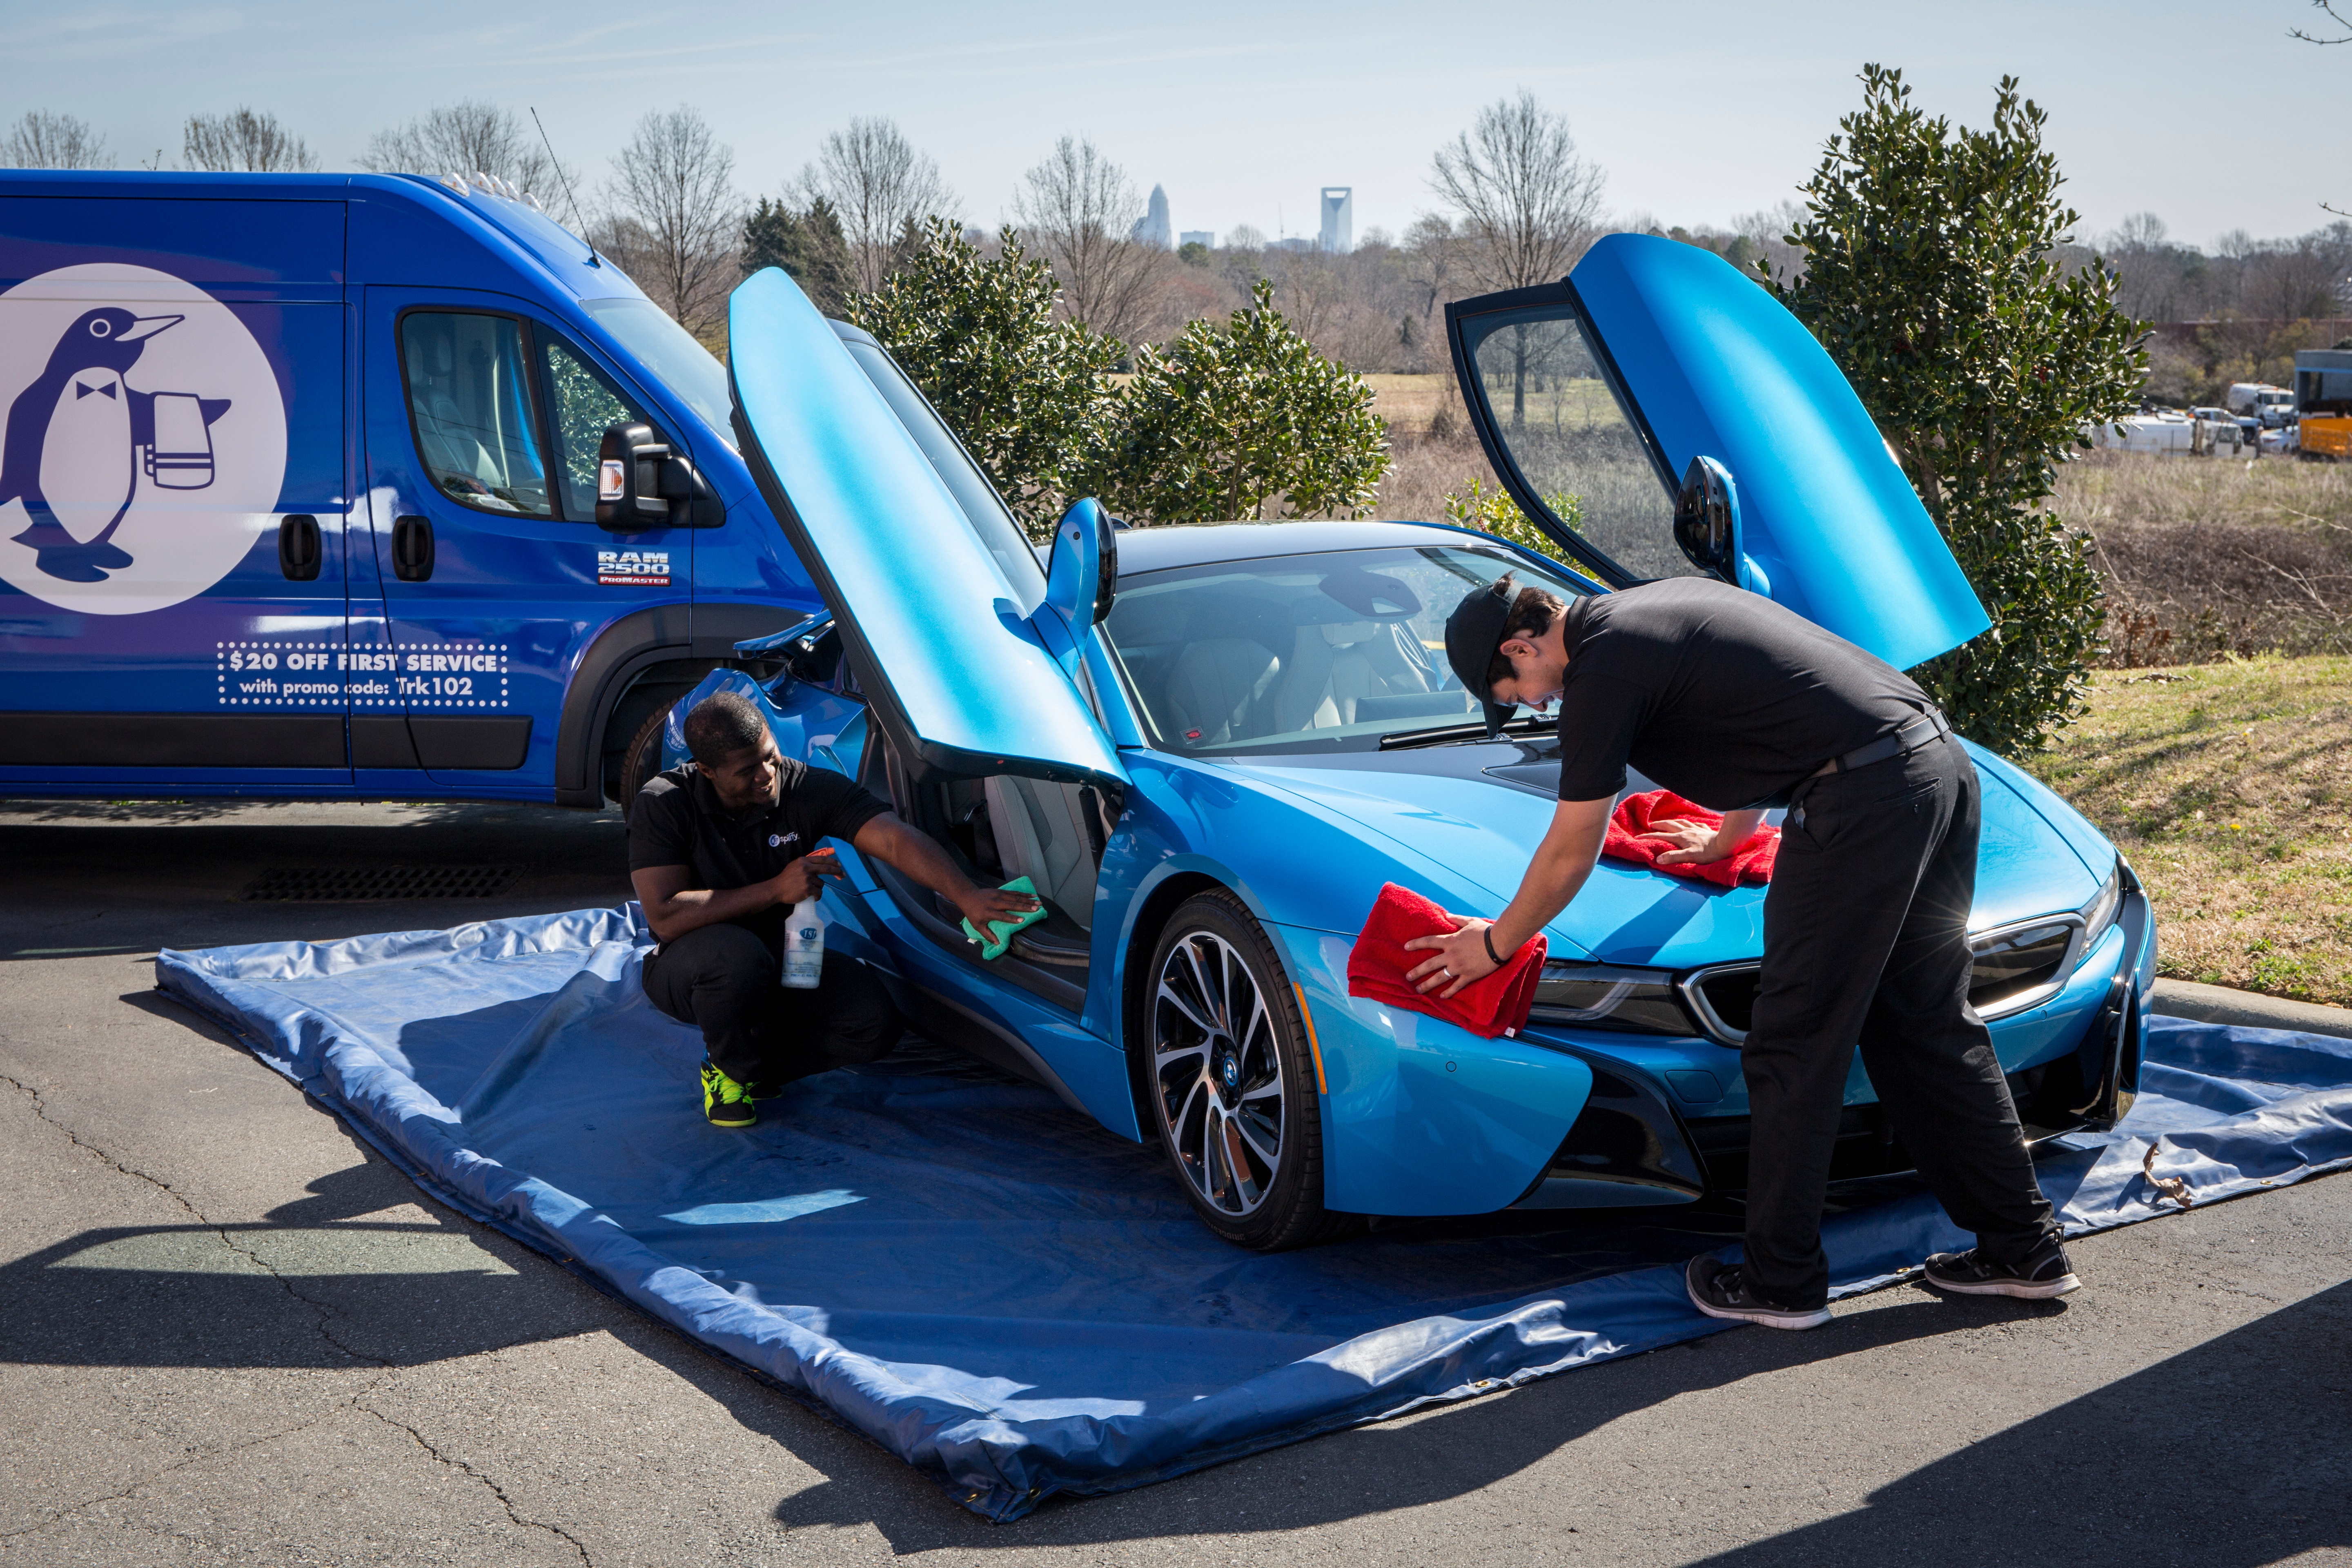 Spiffy Technicians on-site detailing luxury vehicle